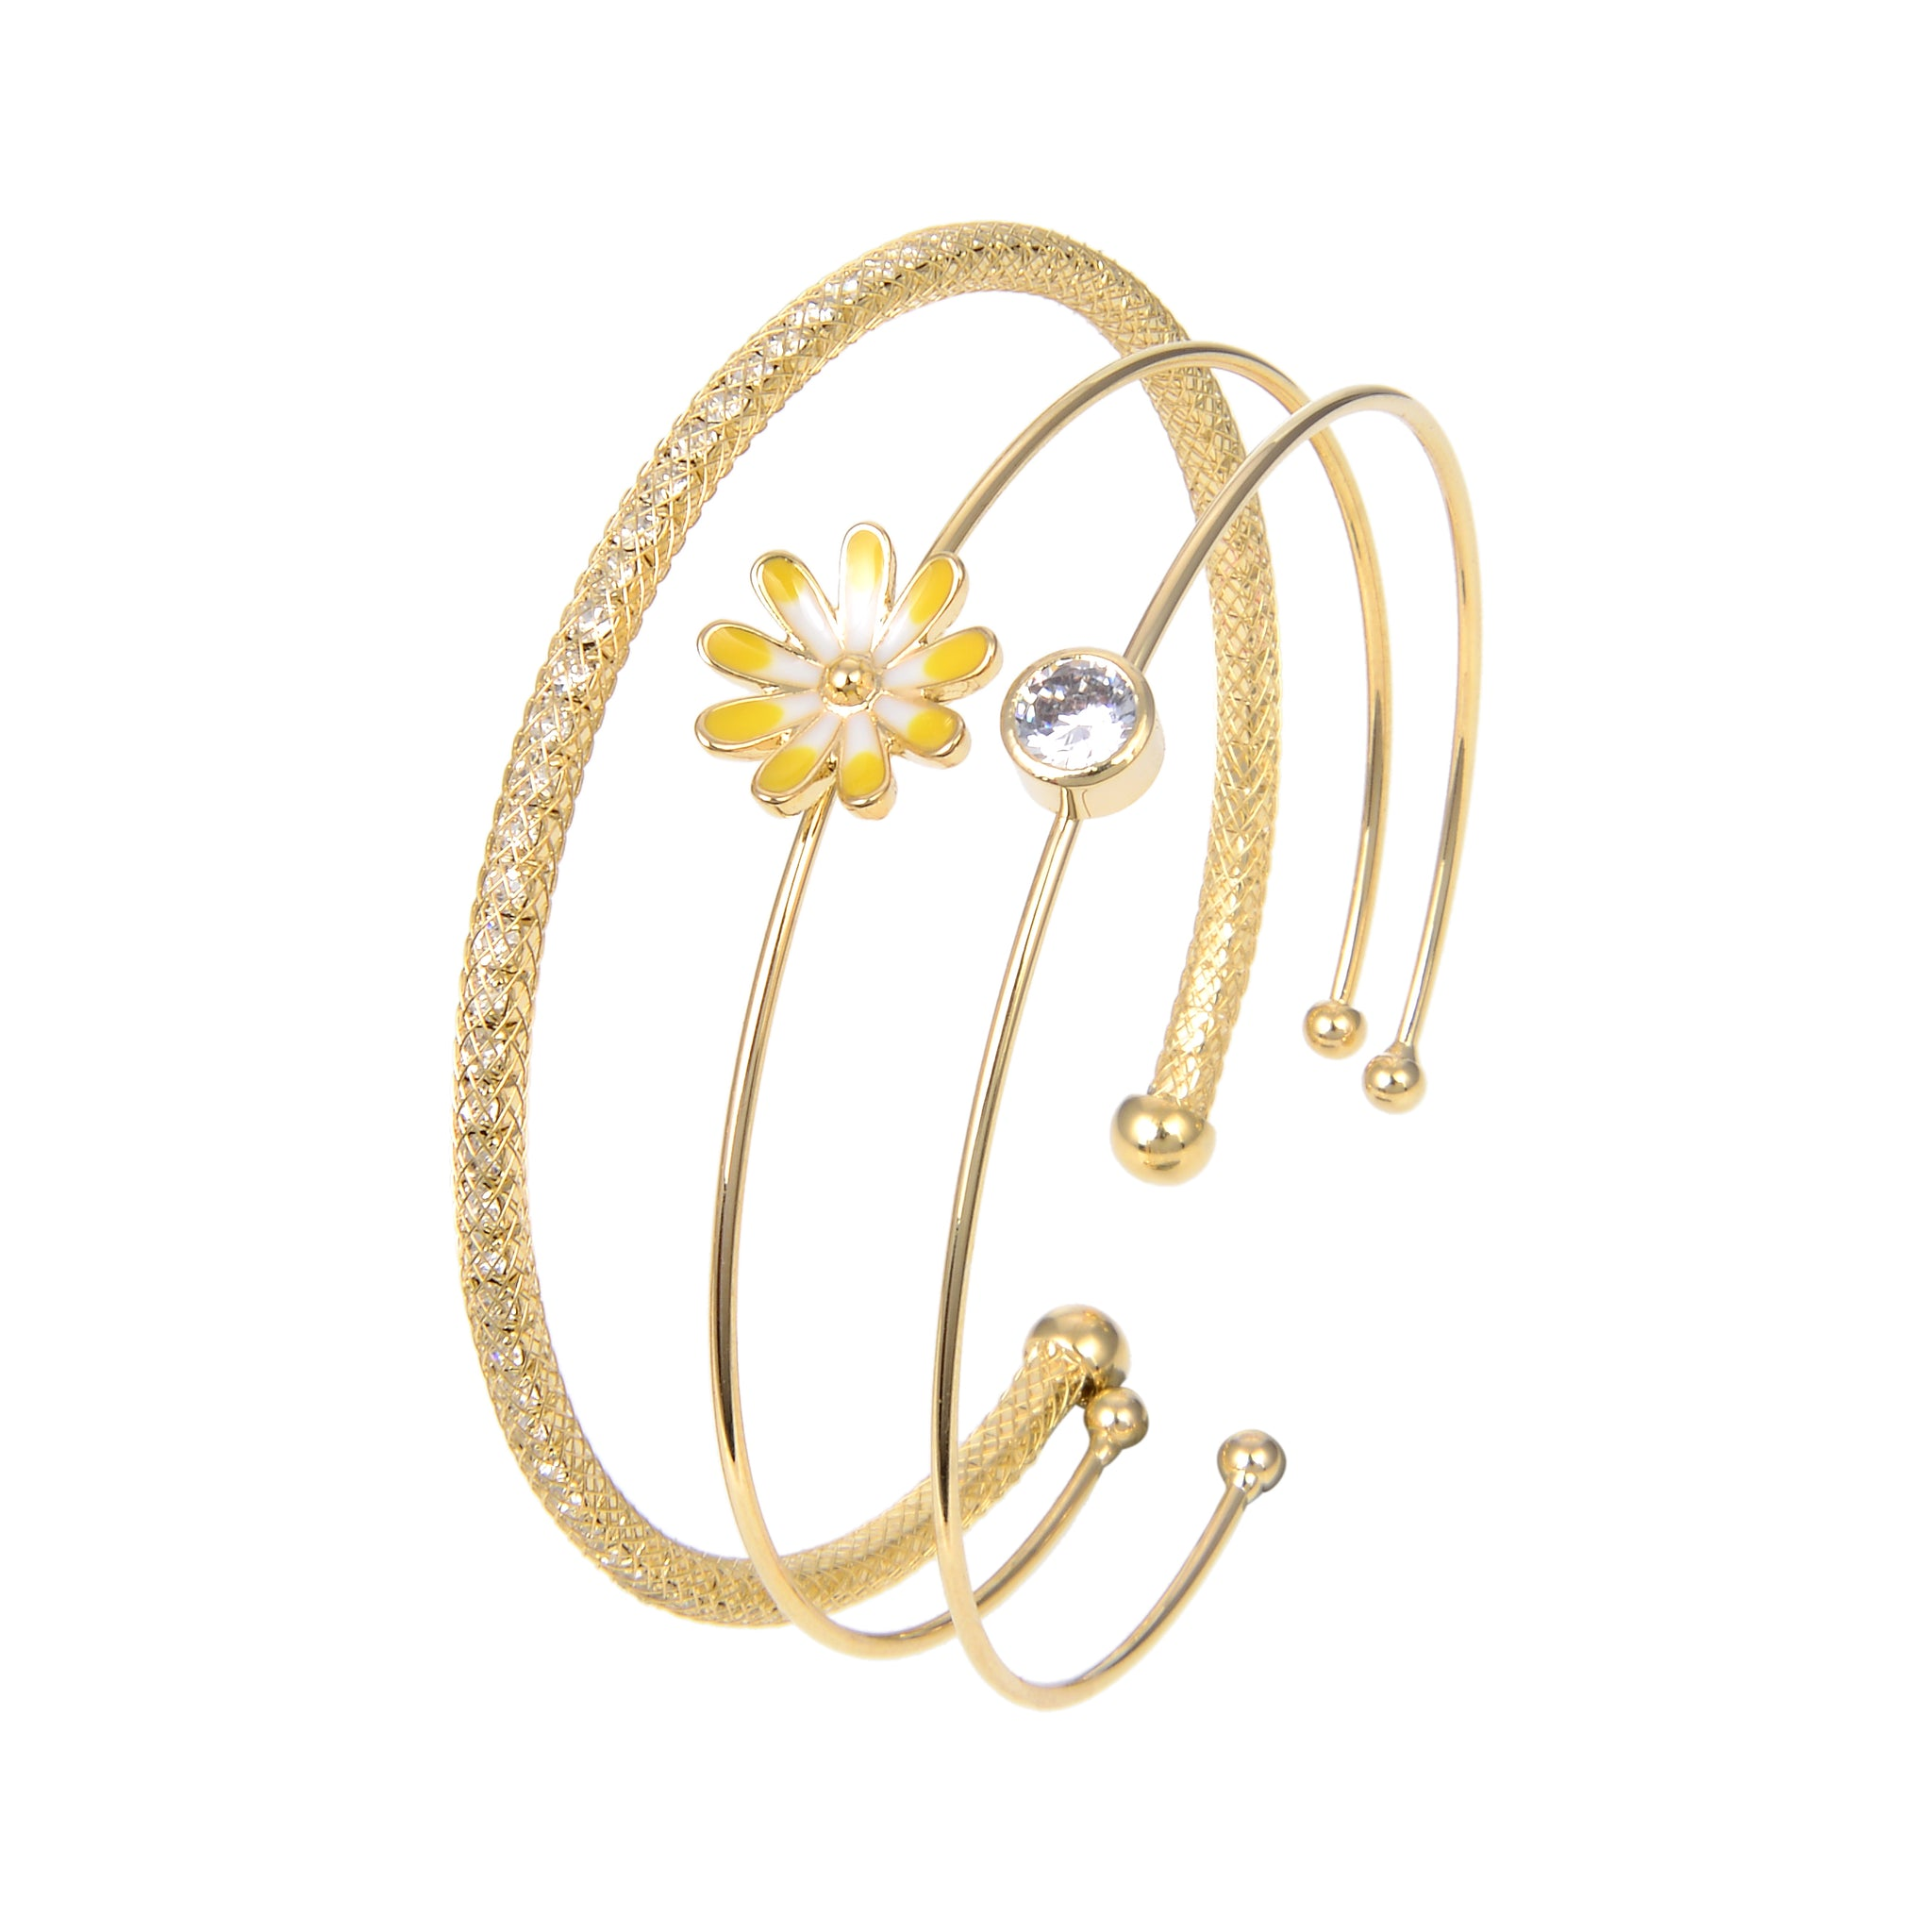 Gold Plated Cubic Zirconia Bangle Bracelet, CZ Flower Shape Bangle Bracelet